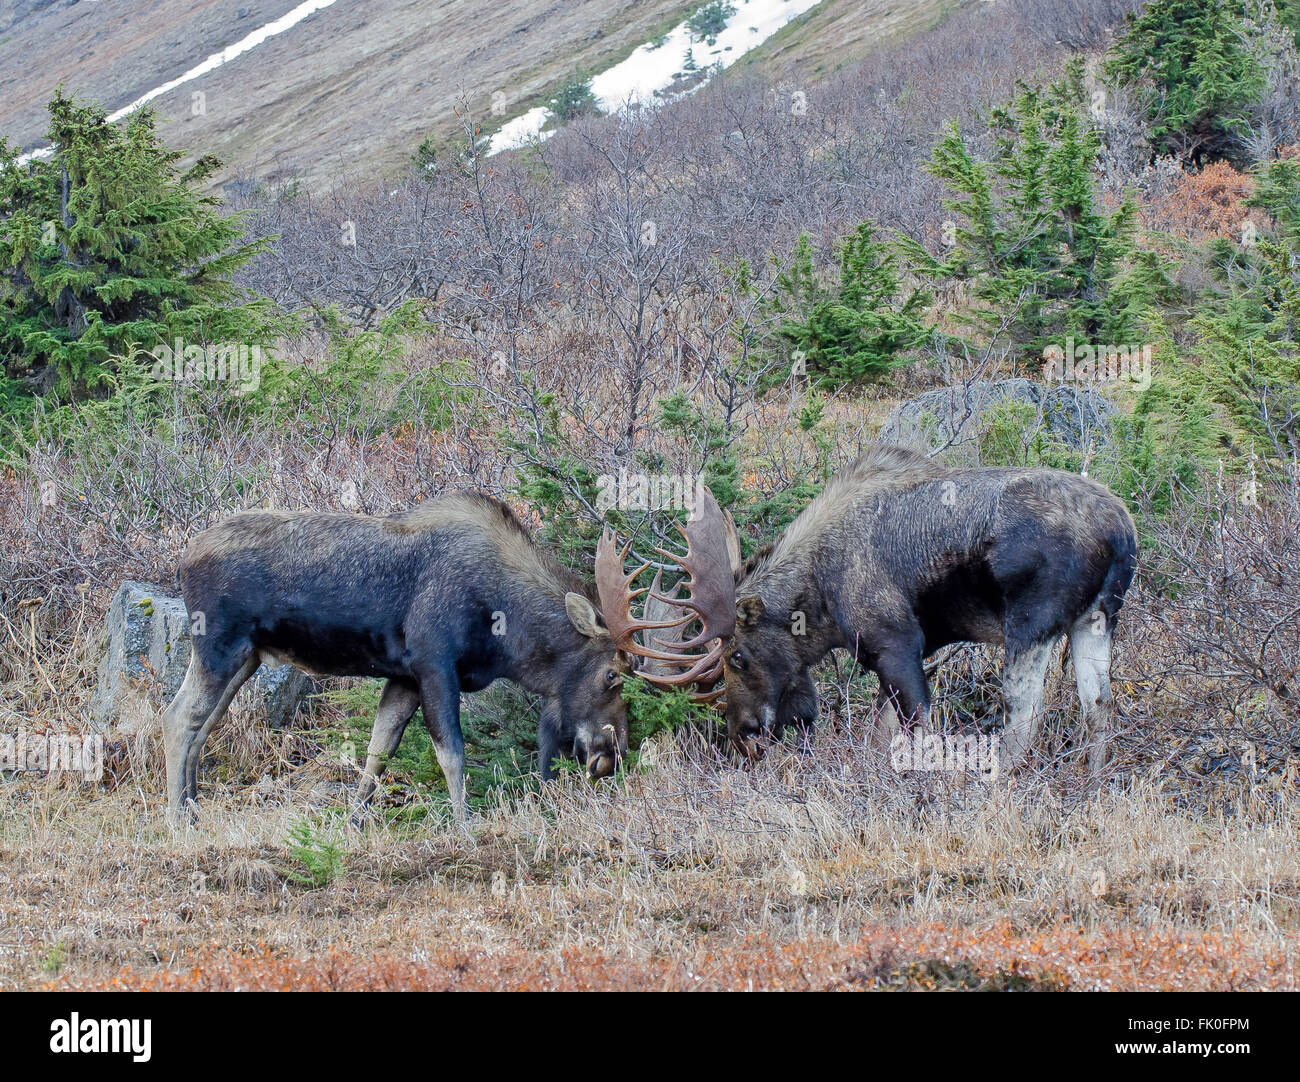 Bulll moose during the rut season - Stock Image